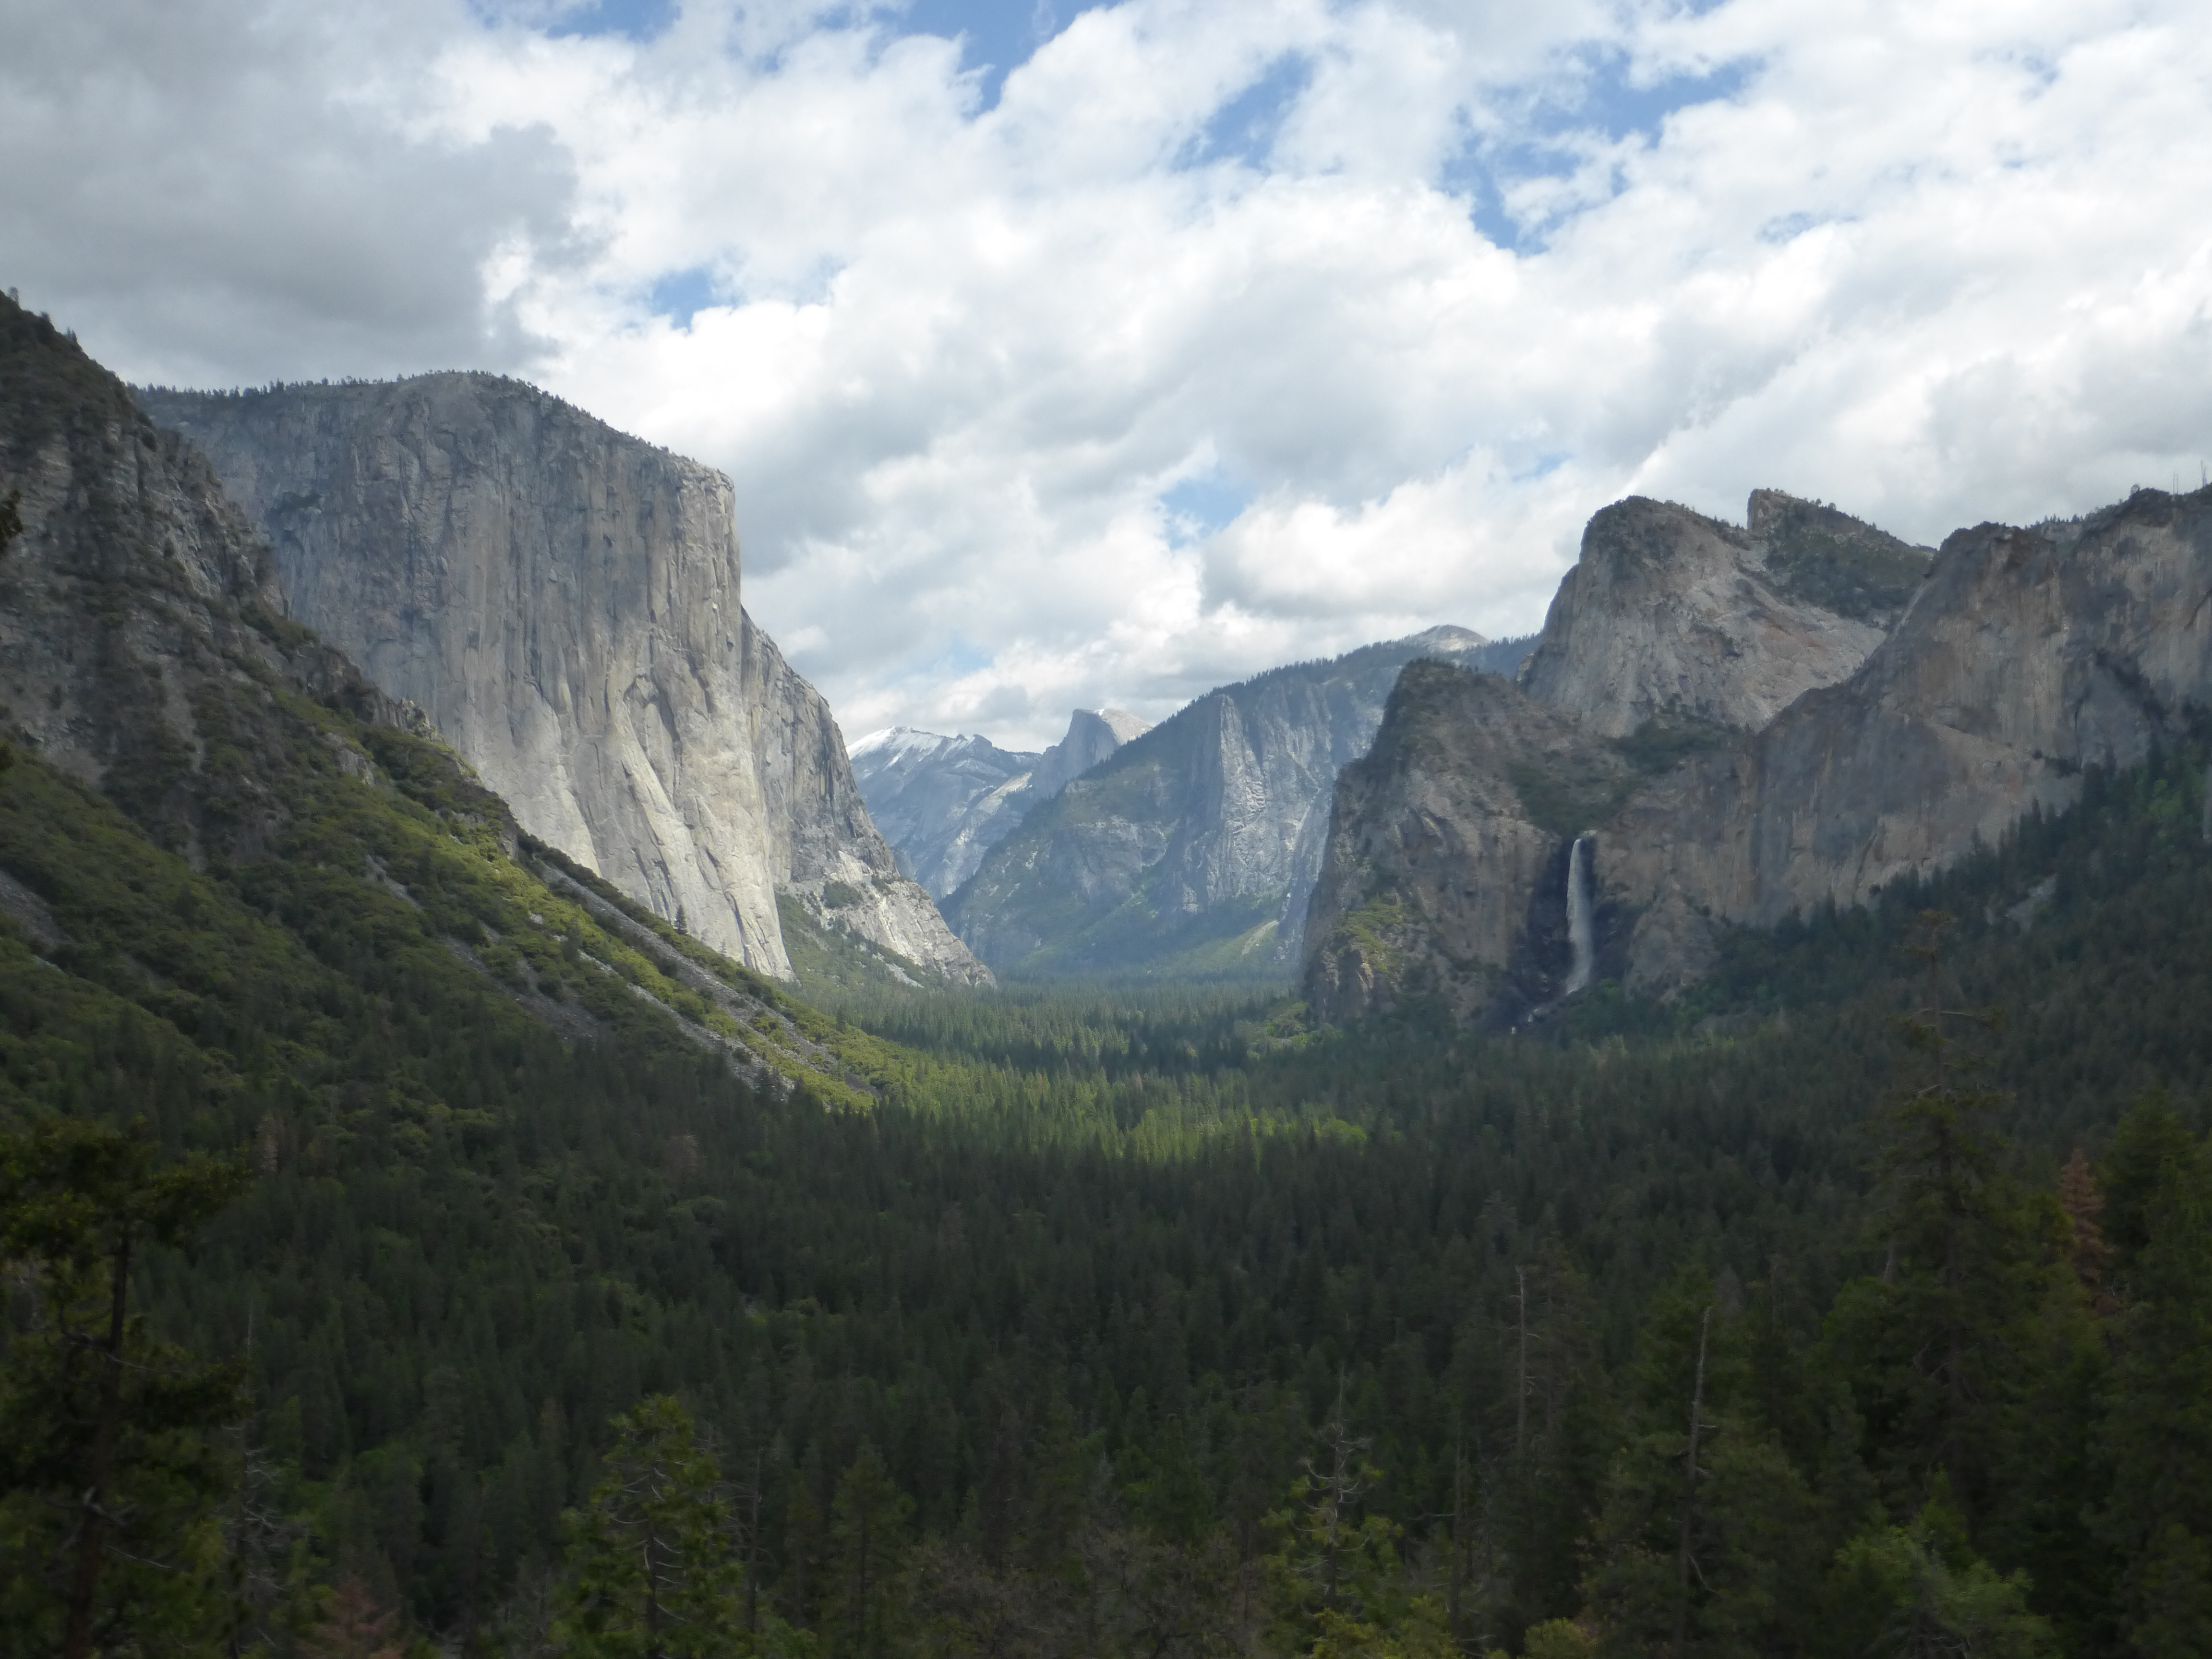 Mysterious disappearances in Yosemite National Park.